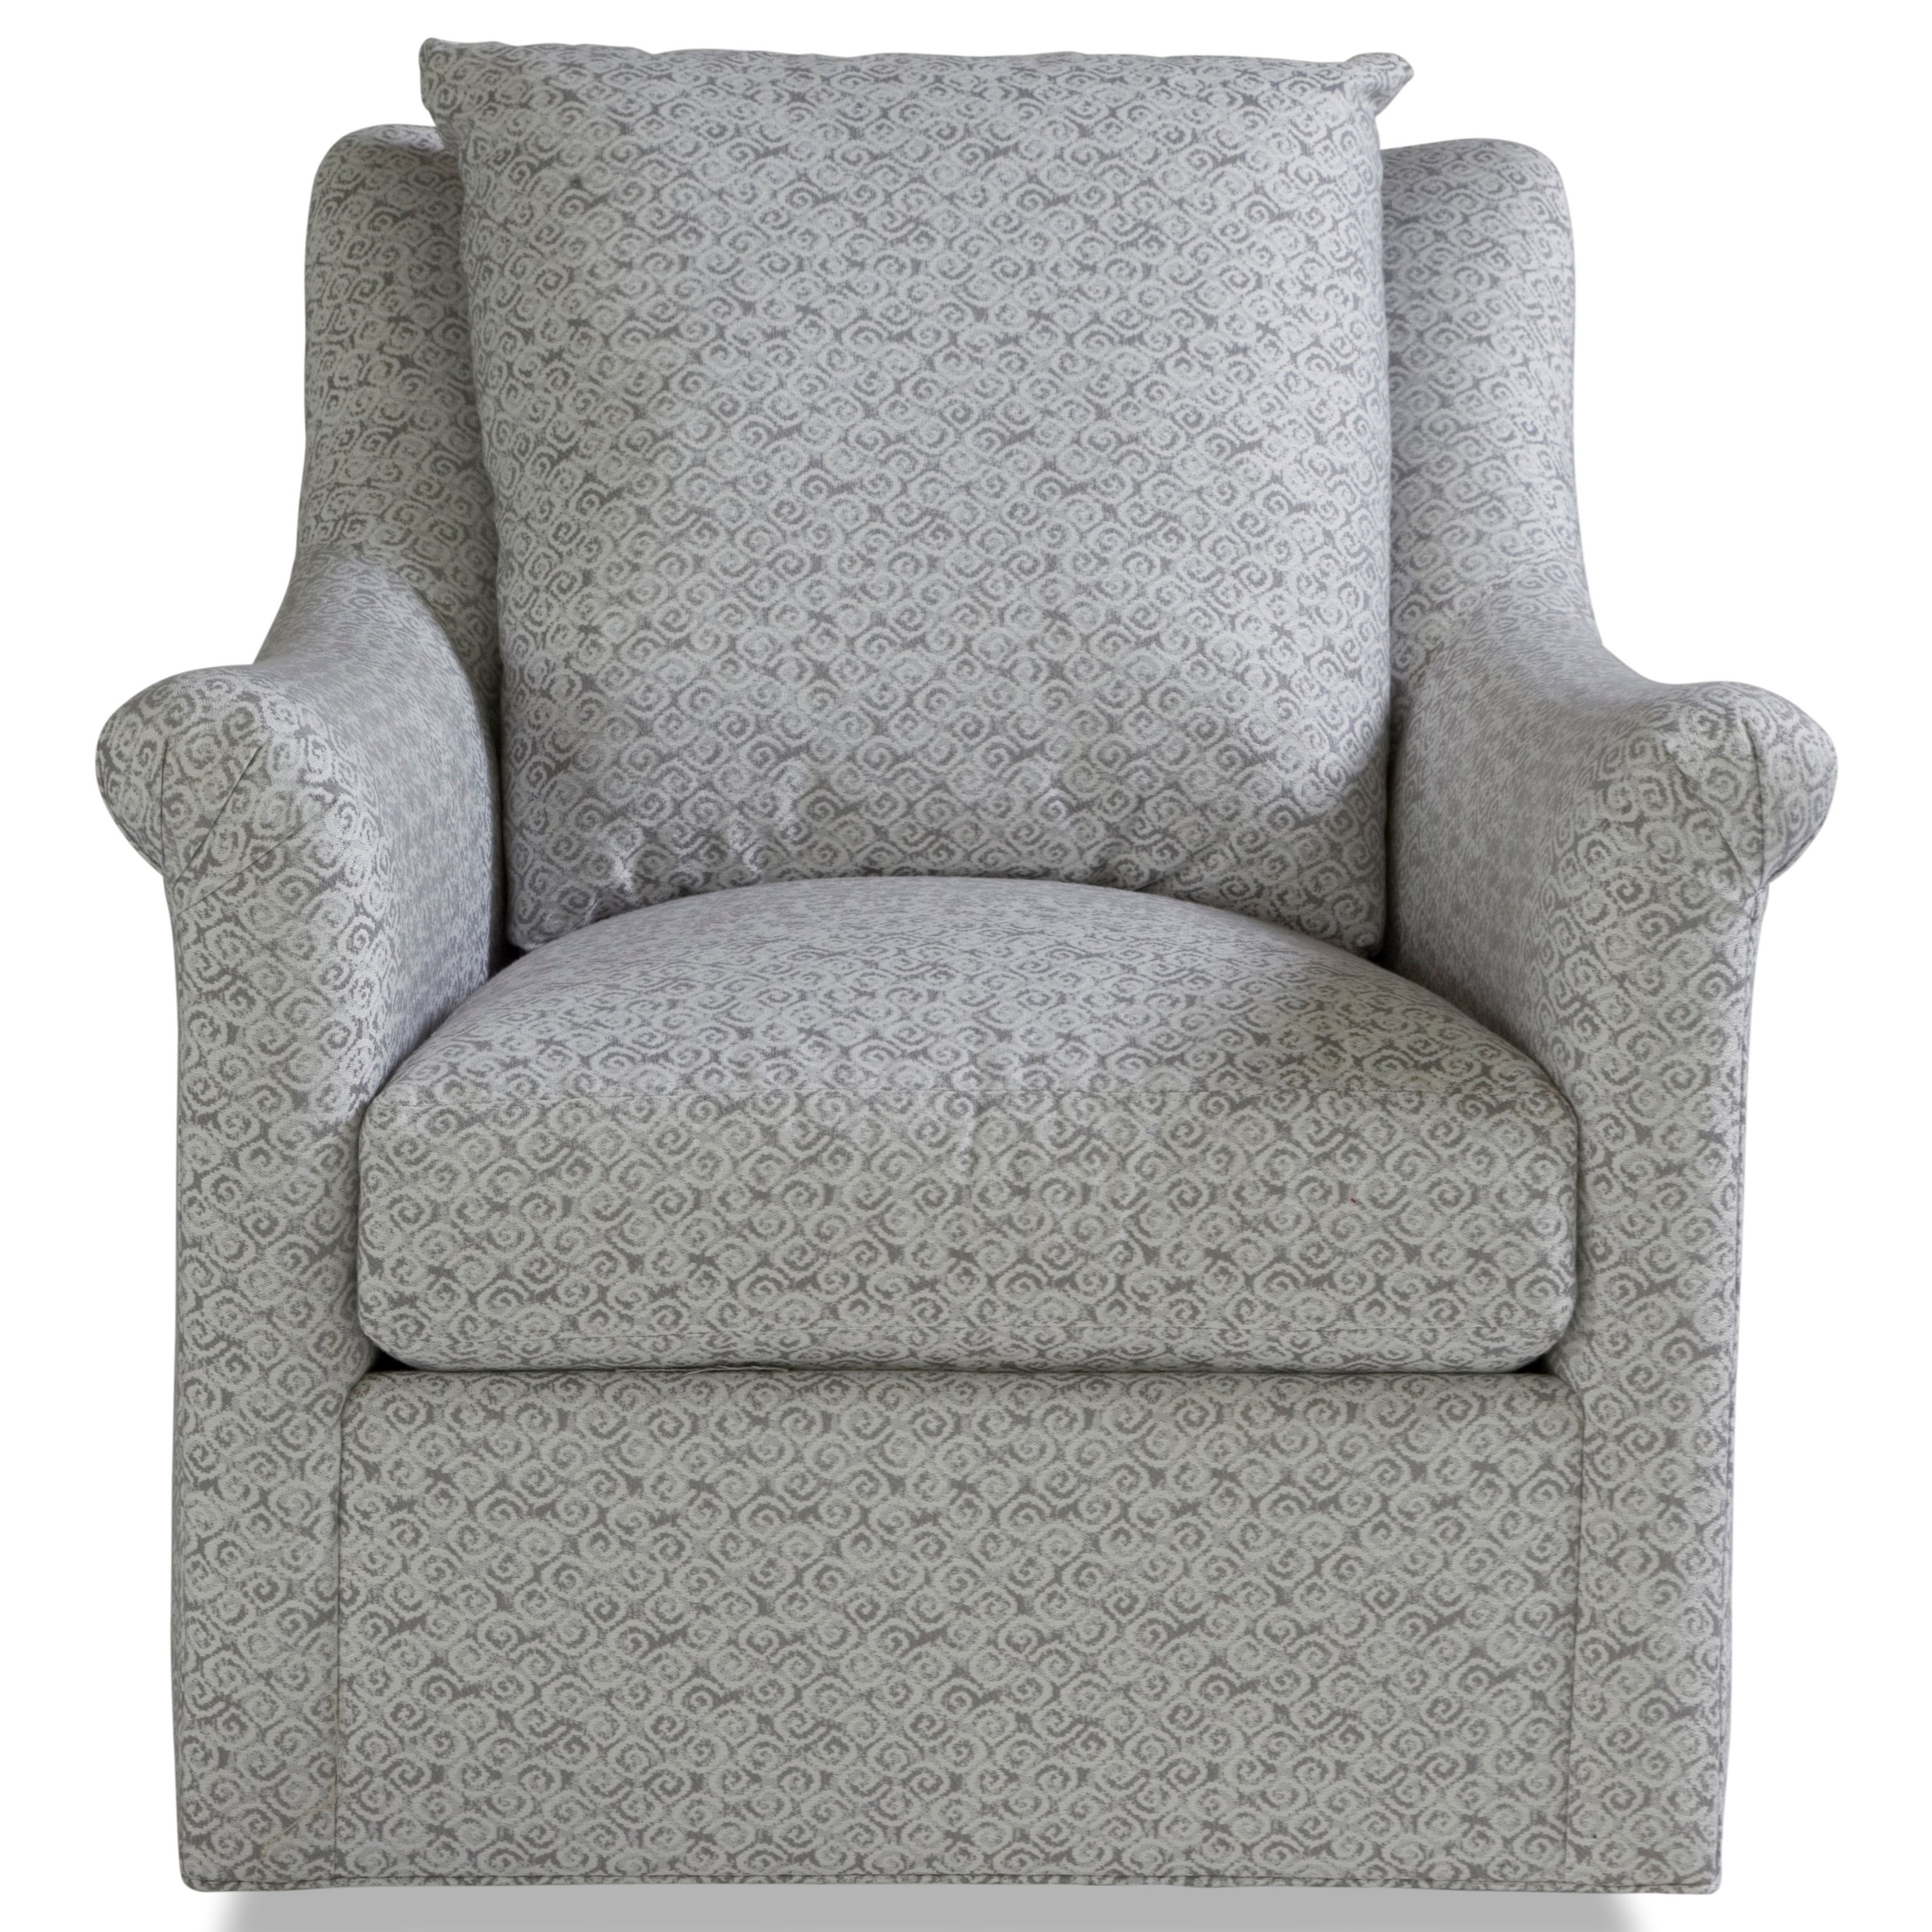 7240 Collection Swivel Chair by Huntington House at Belfort Furniture